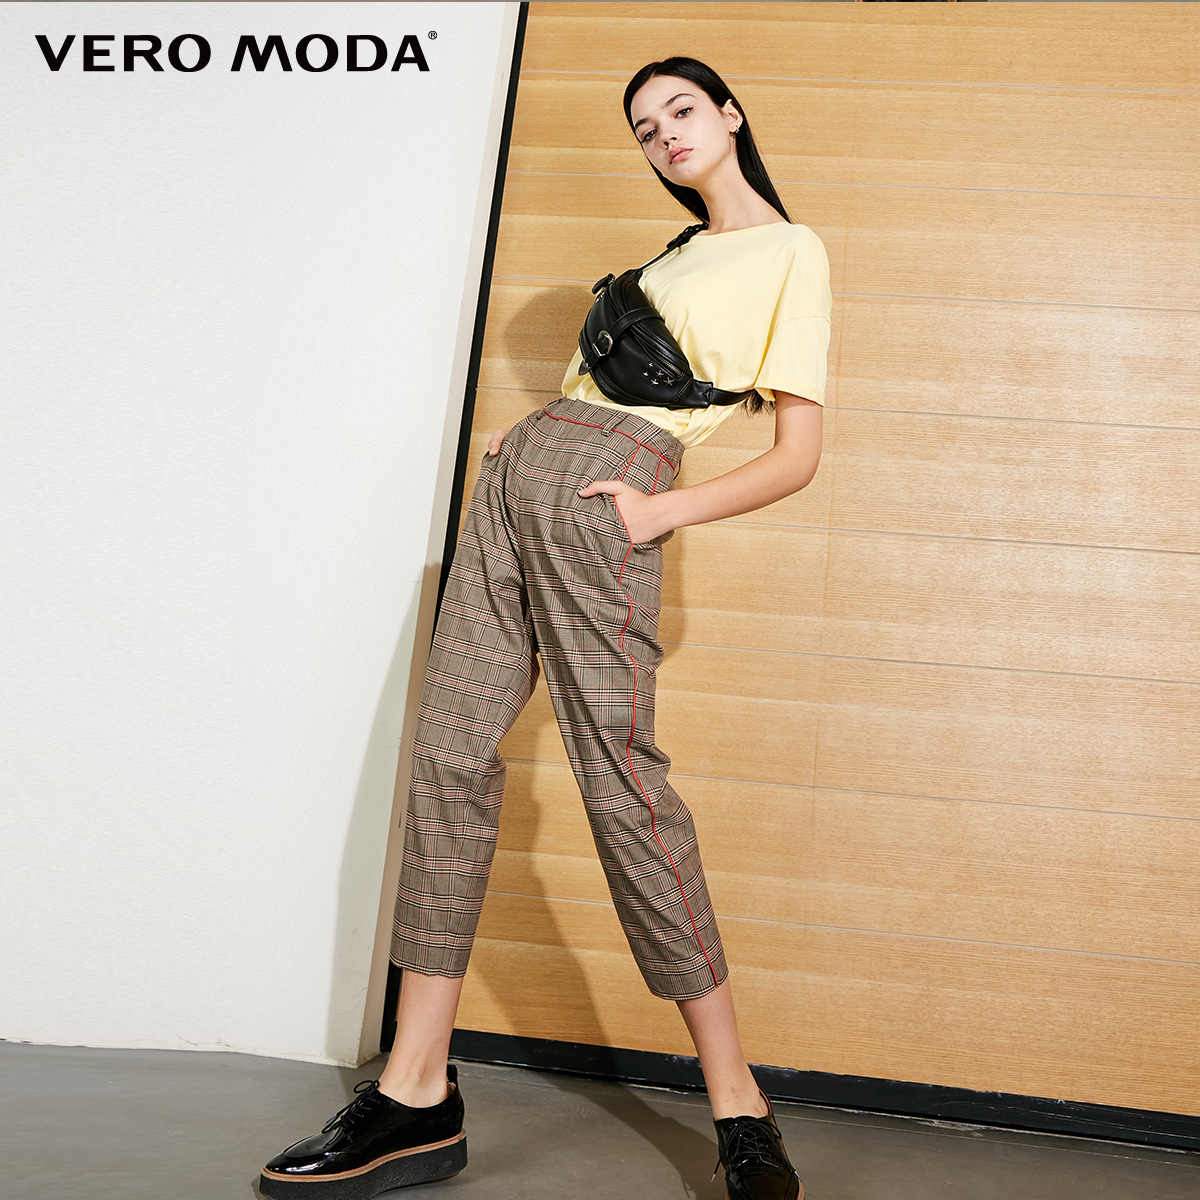 Vero Moda 2019 New Arrivals Women's Mid Waist Plaid Casual Crop Pants | 318450511